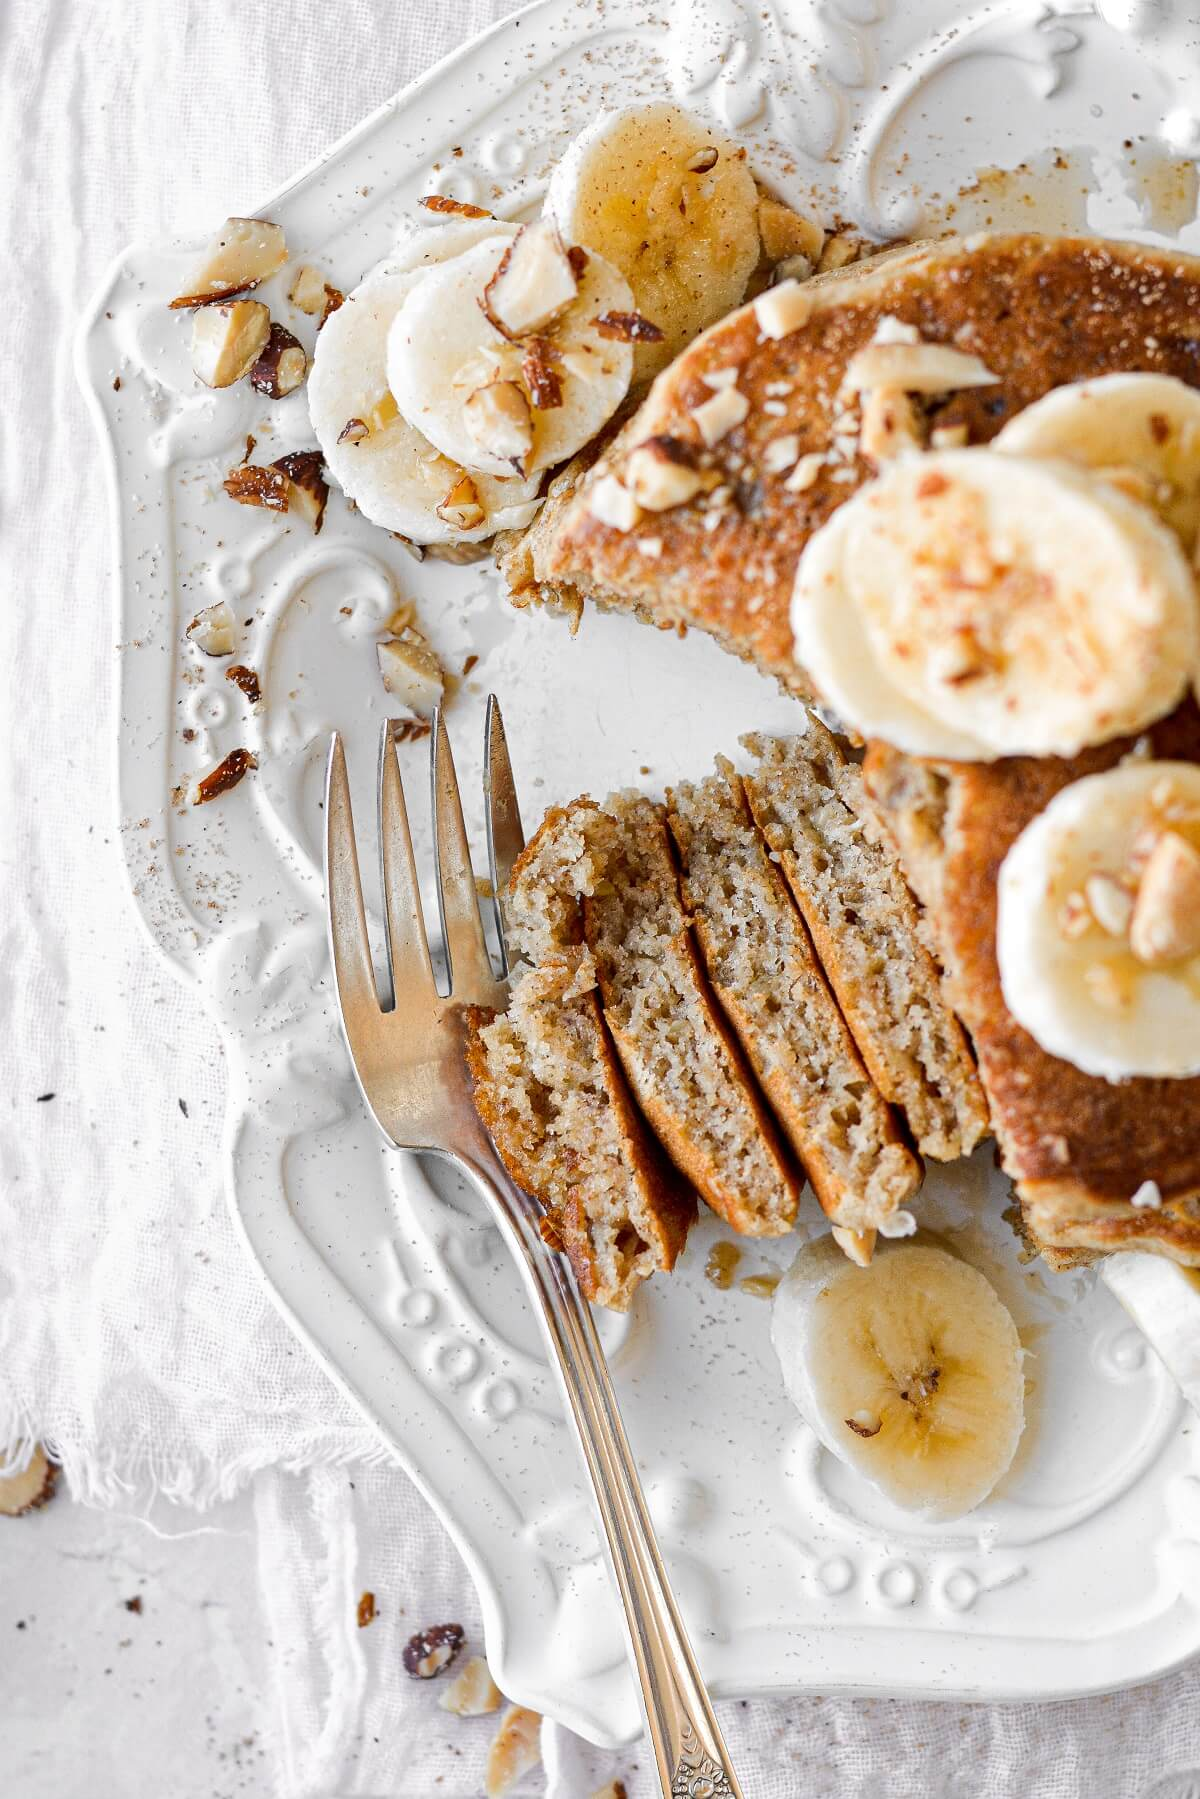 Banana bread pancakes, topped with bananas and almonds.